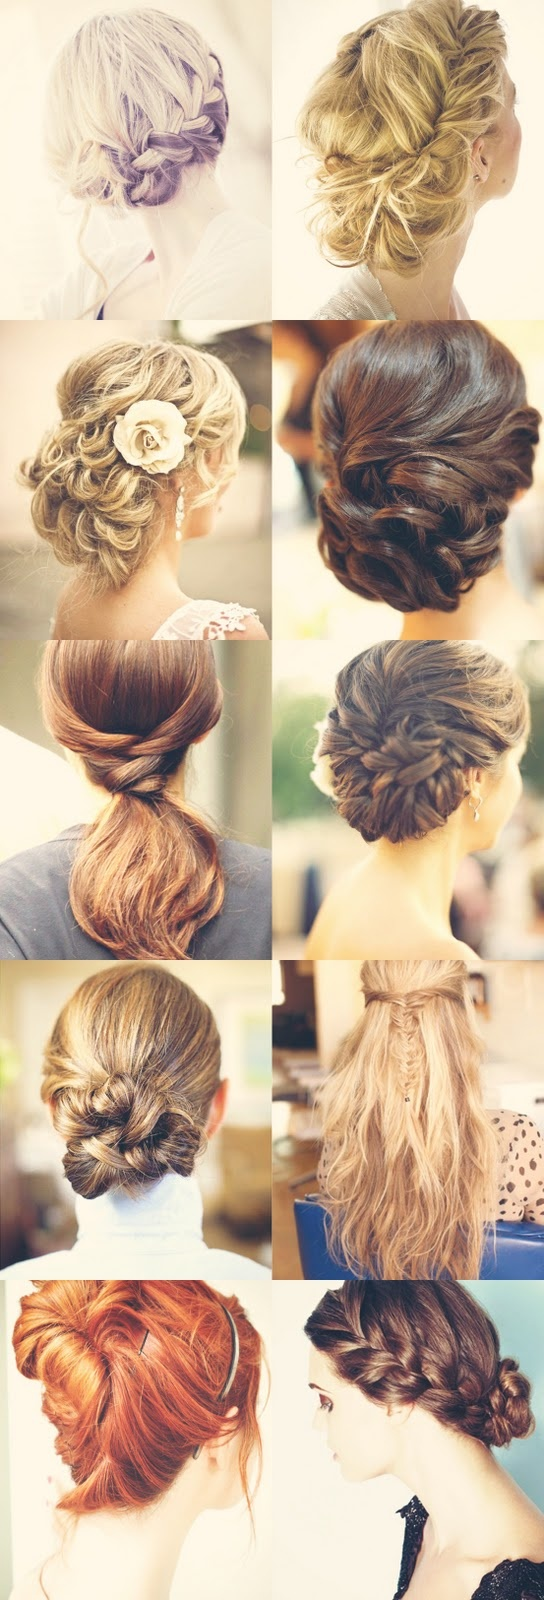 Wedding updo...too many to choose from!